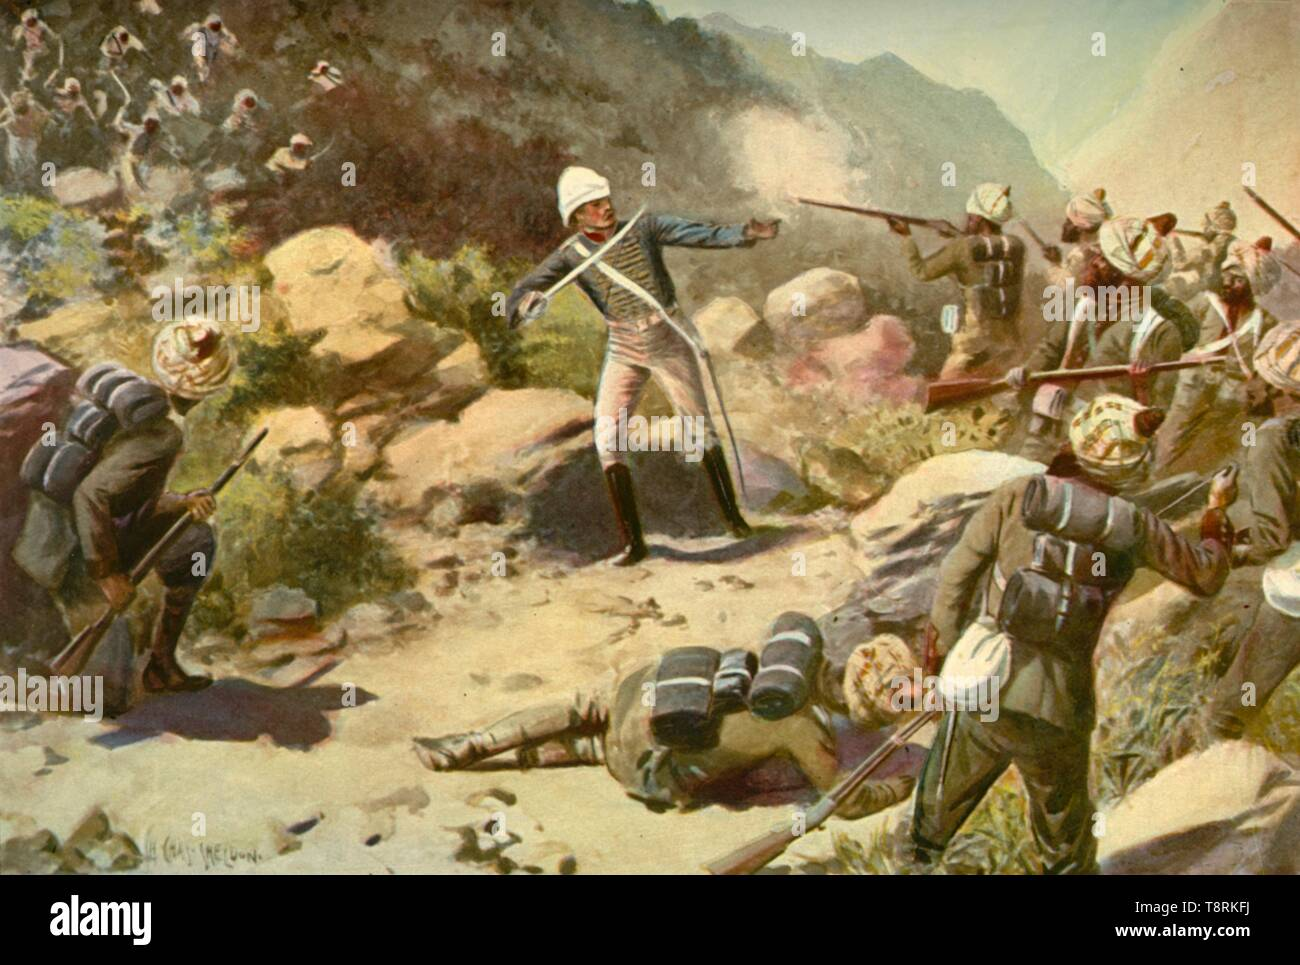 "'Roberts Rallying the Pioneers at Umbeyla', (1901). British Brevet Major Frederick Sleigh Roberts (1832-1914) fought in the Ambela (or Umbeyla) Campaign of 1863, waged by the British against local Pashtuns of Yusufzai tribes, in the border region between British India and Afghanistan. From ""The Life and Deeds of Earl Roberts, Vol. II. - To The Abdication of Yakub Khan"", by J. Maclaren Cobban. [T. C. & E. C. Jack, Edinburgh, 1901] - Stock Image"